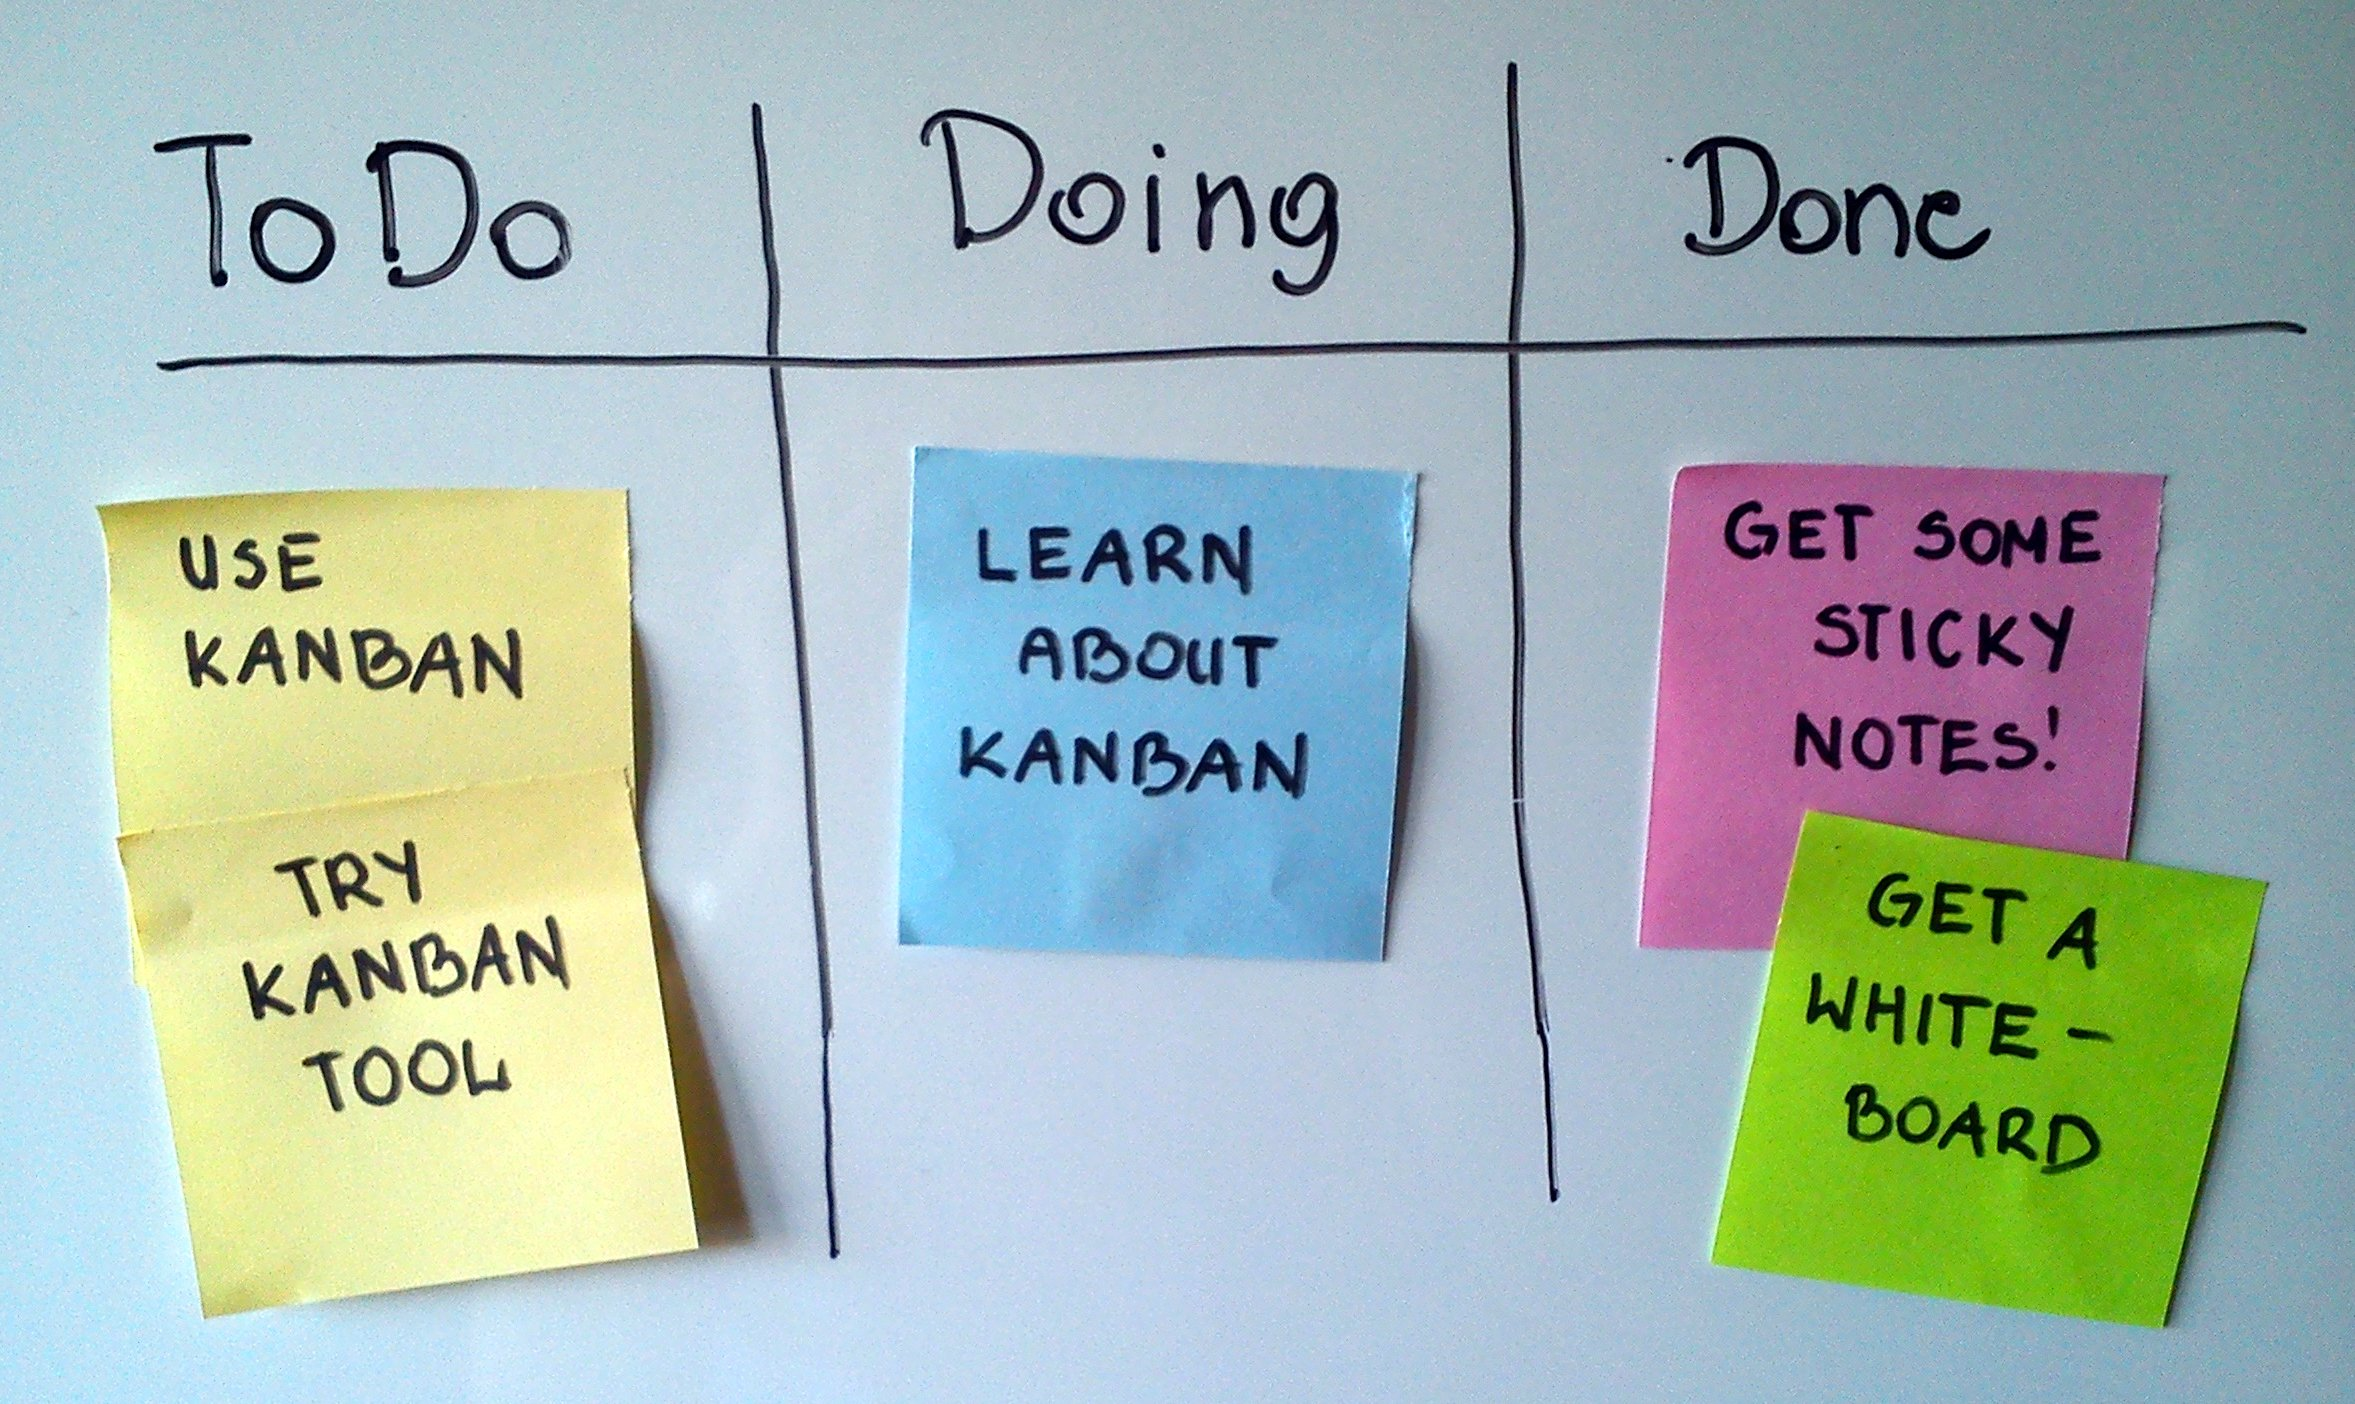 source: https://en.wikipedia.org/wiki/Kanban_board